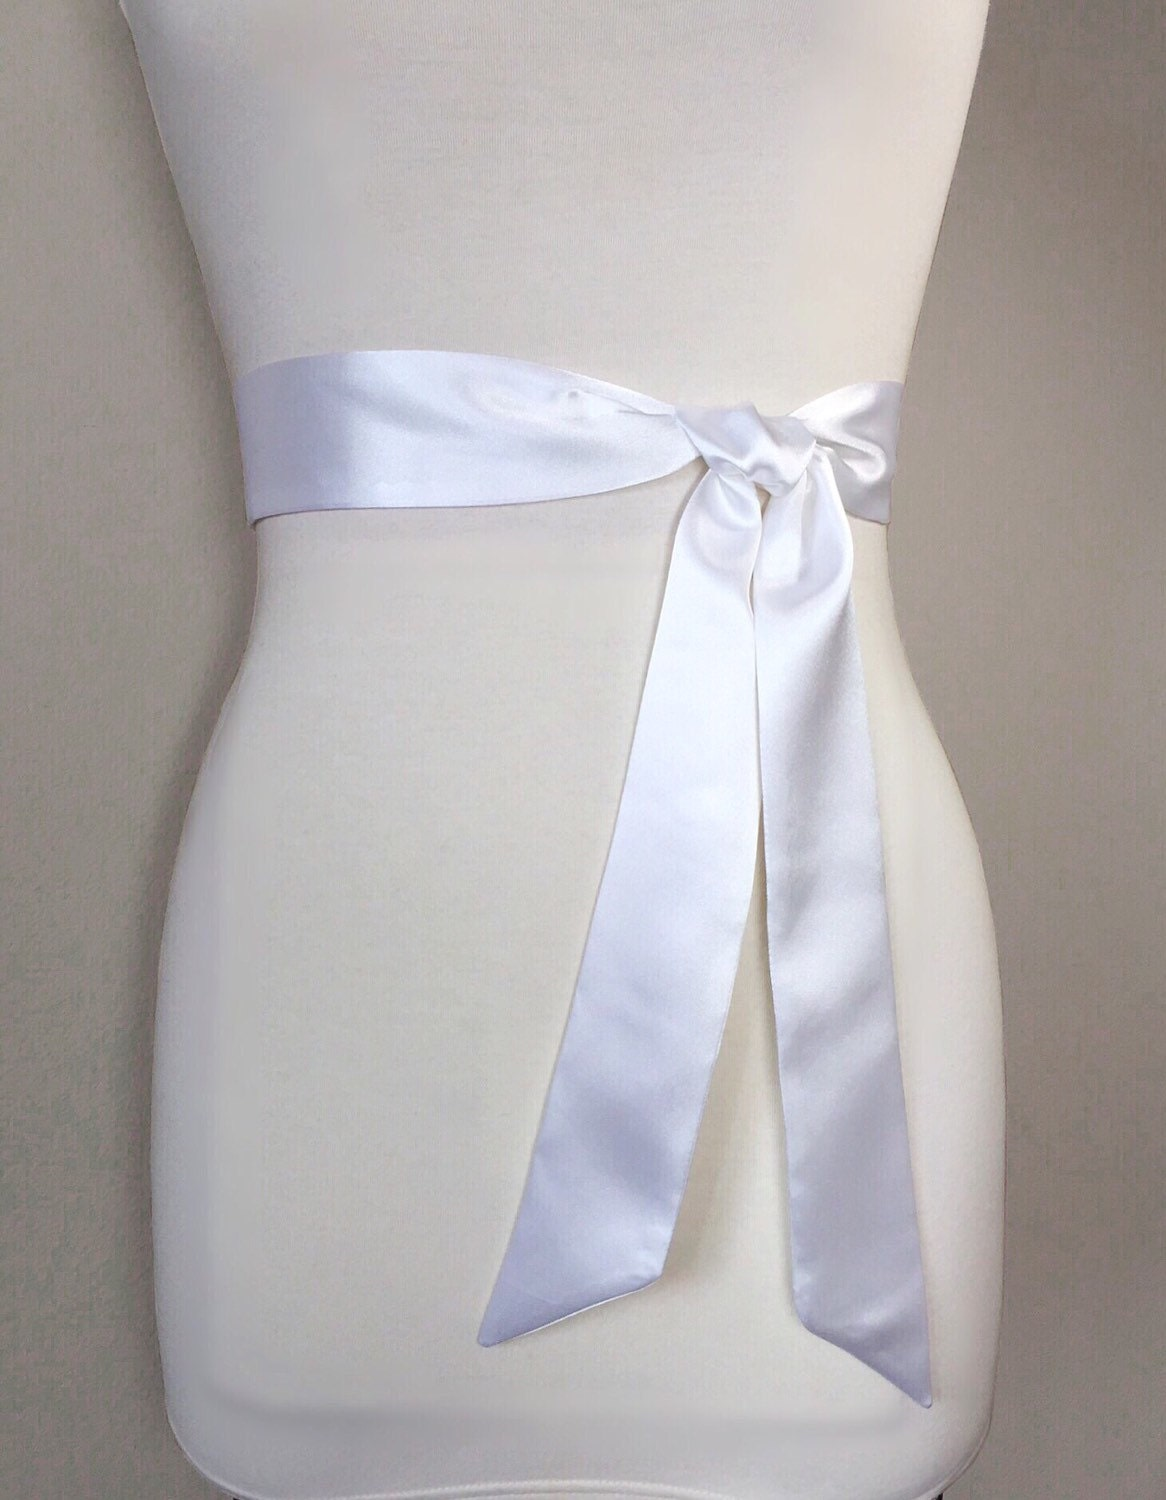 Narrow white satin sash white sash belt bridesmaid sash for Satin belt for wedding dress